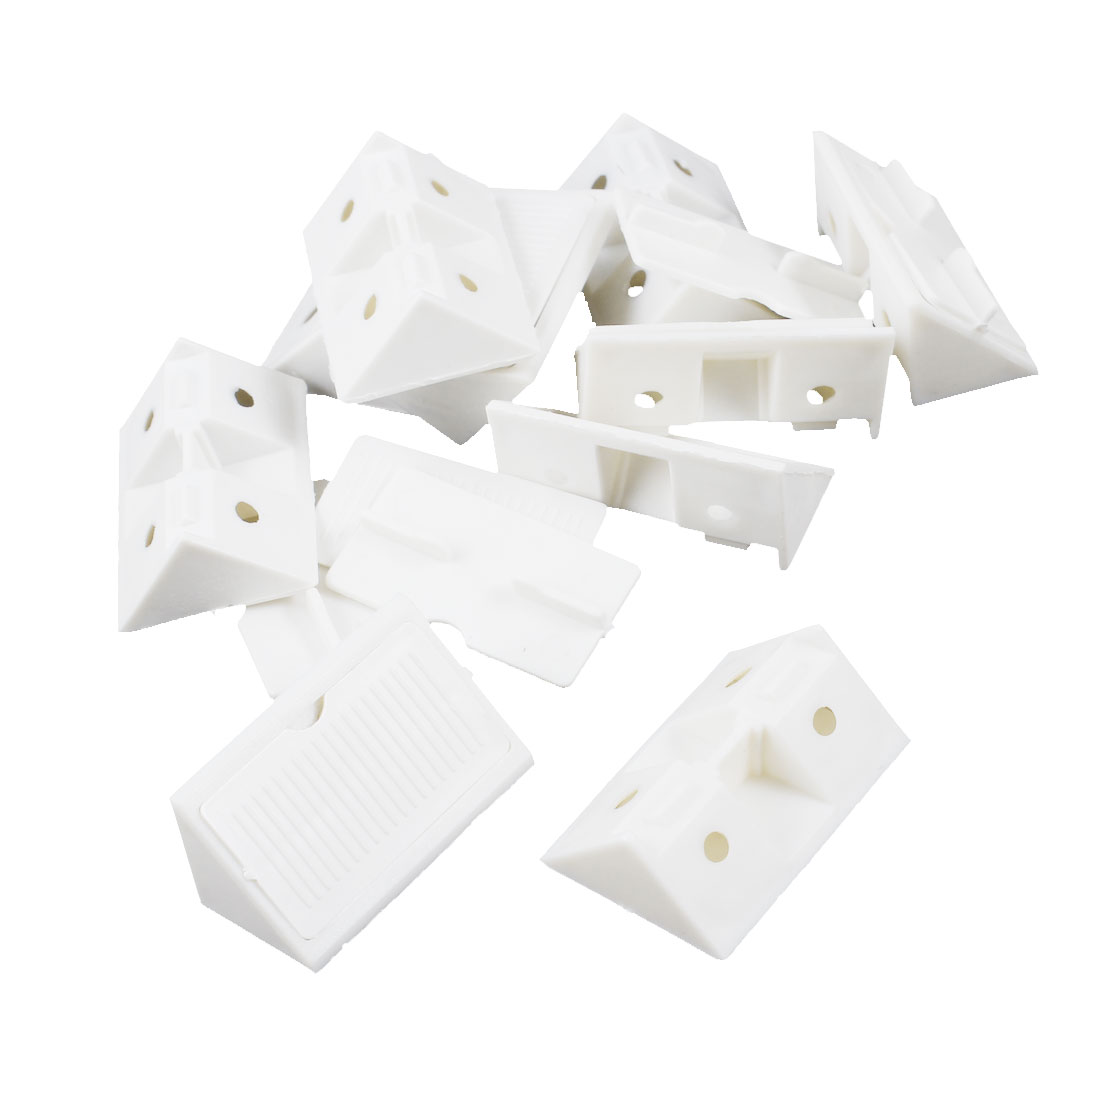 Shelf-Door-Cabinet-Plastic-Corner-90-Degree-Angle-Brackets-White-10-Pcs